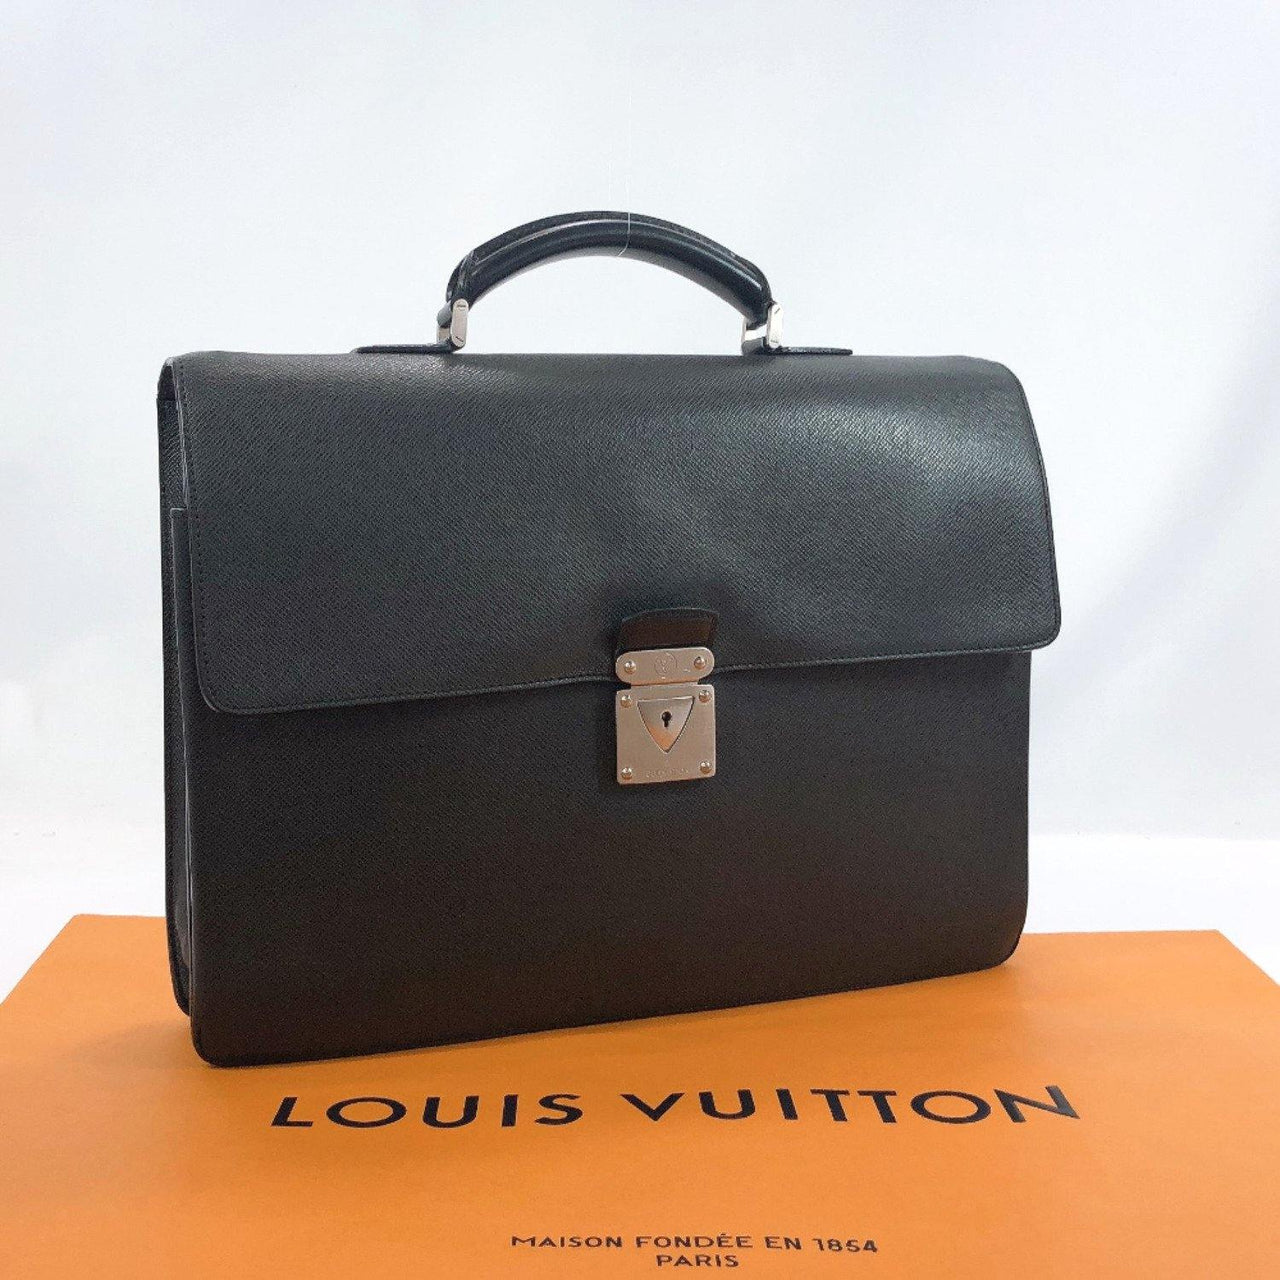 LOUIS VUITTON Business bag M31052 Robusto Taiga black mens Used - JP-BRANDS.com